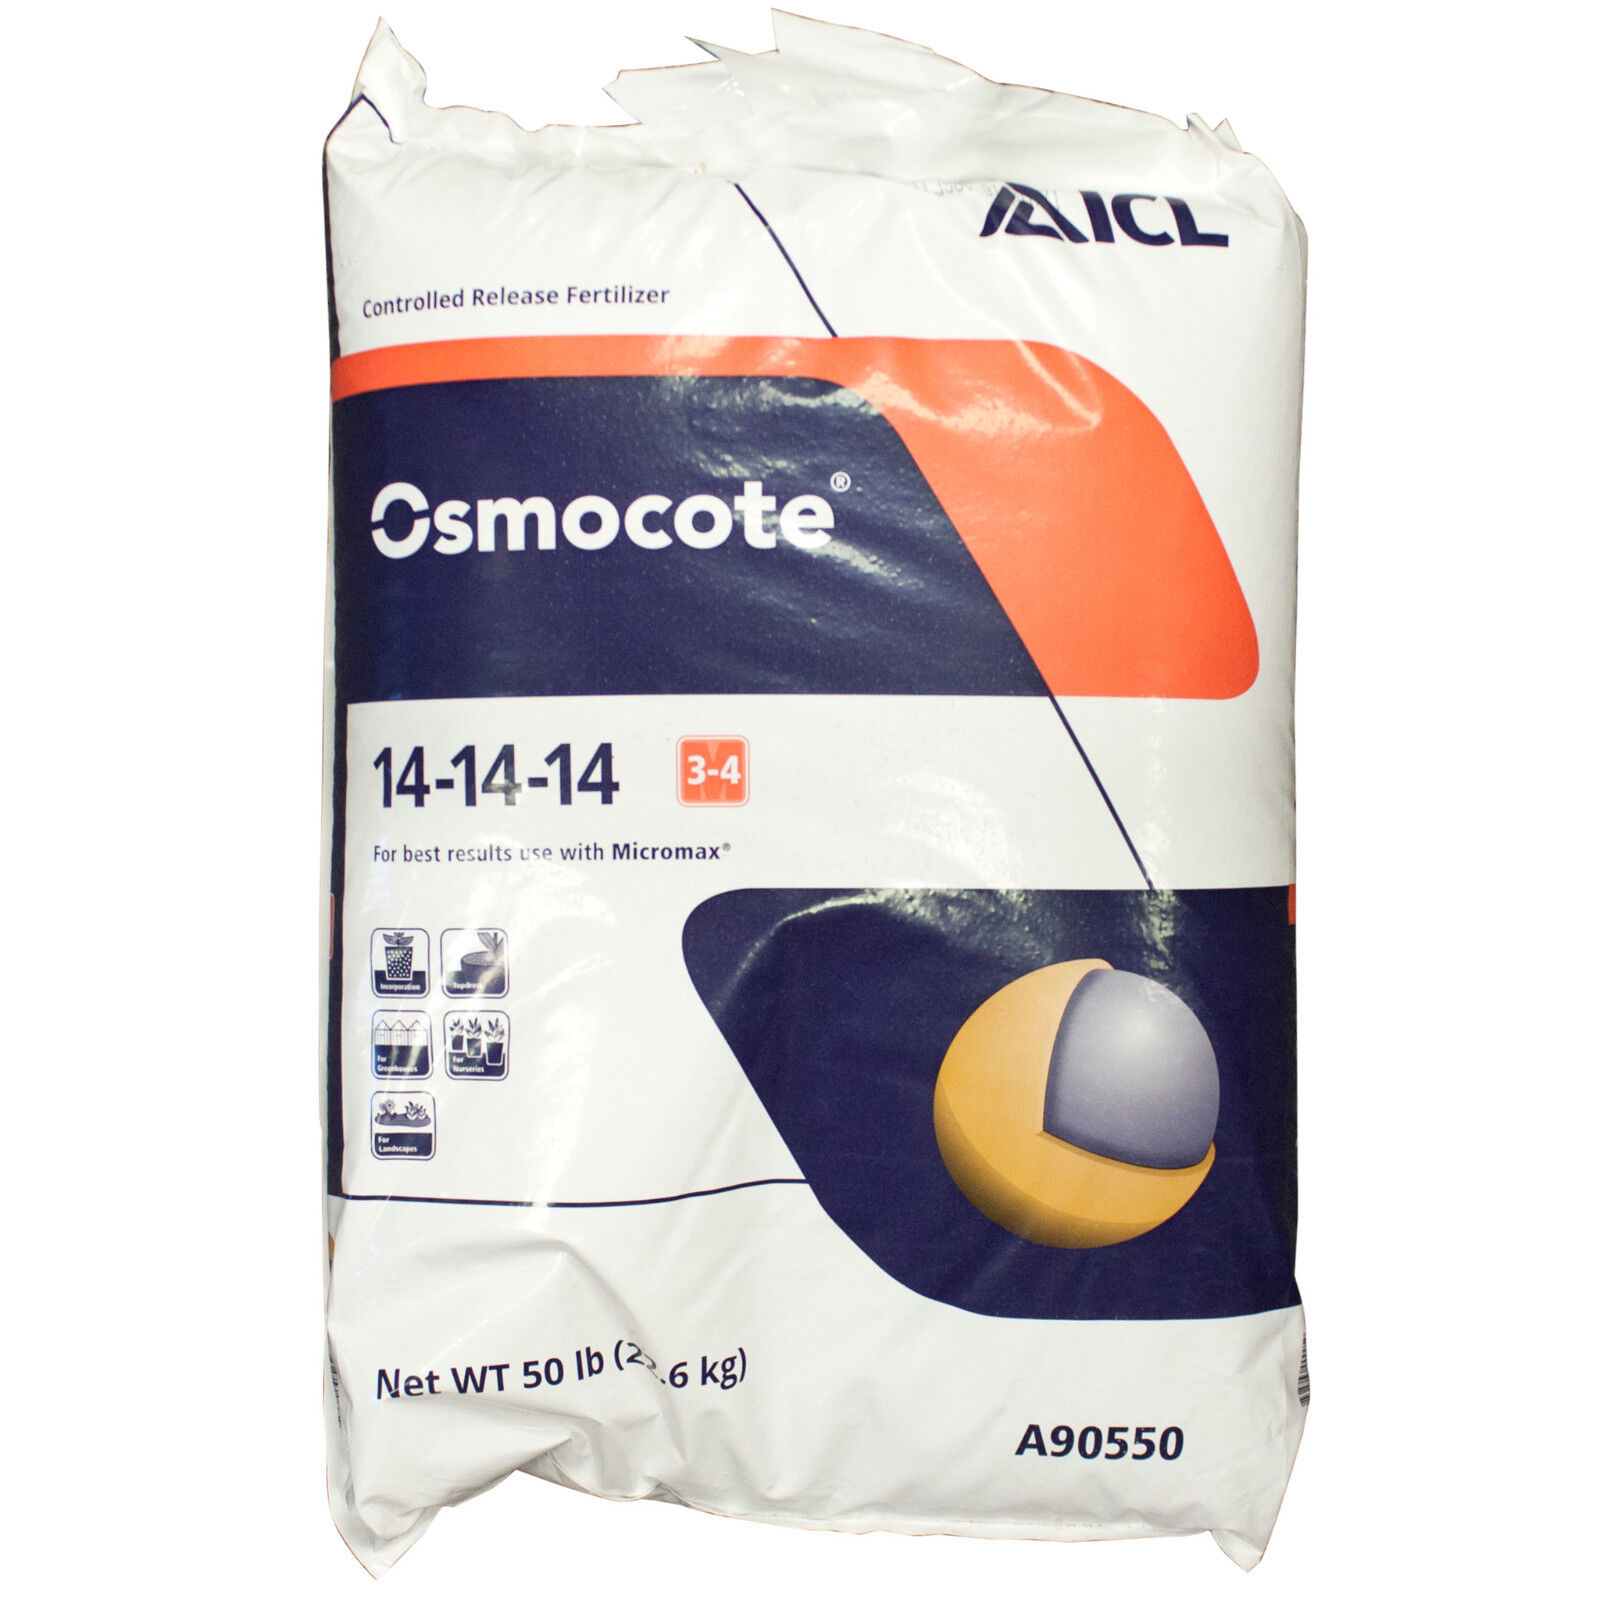 Osmocote Classic 3-4 Month 14-14-14 Fertilizer 50 Lbs Everri